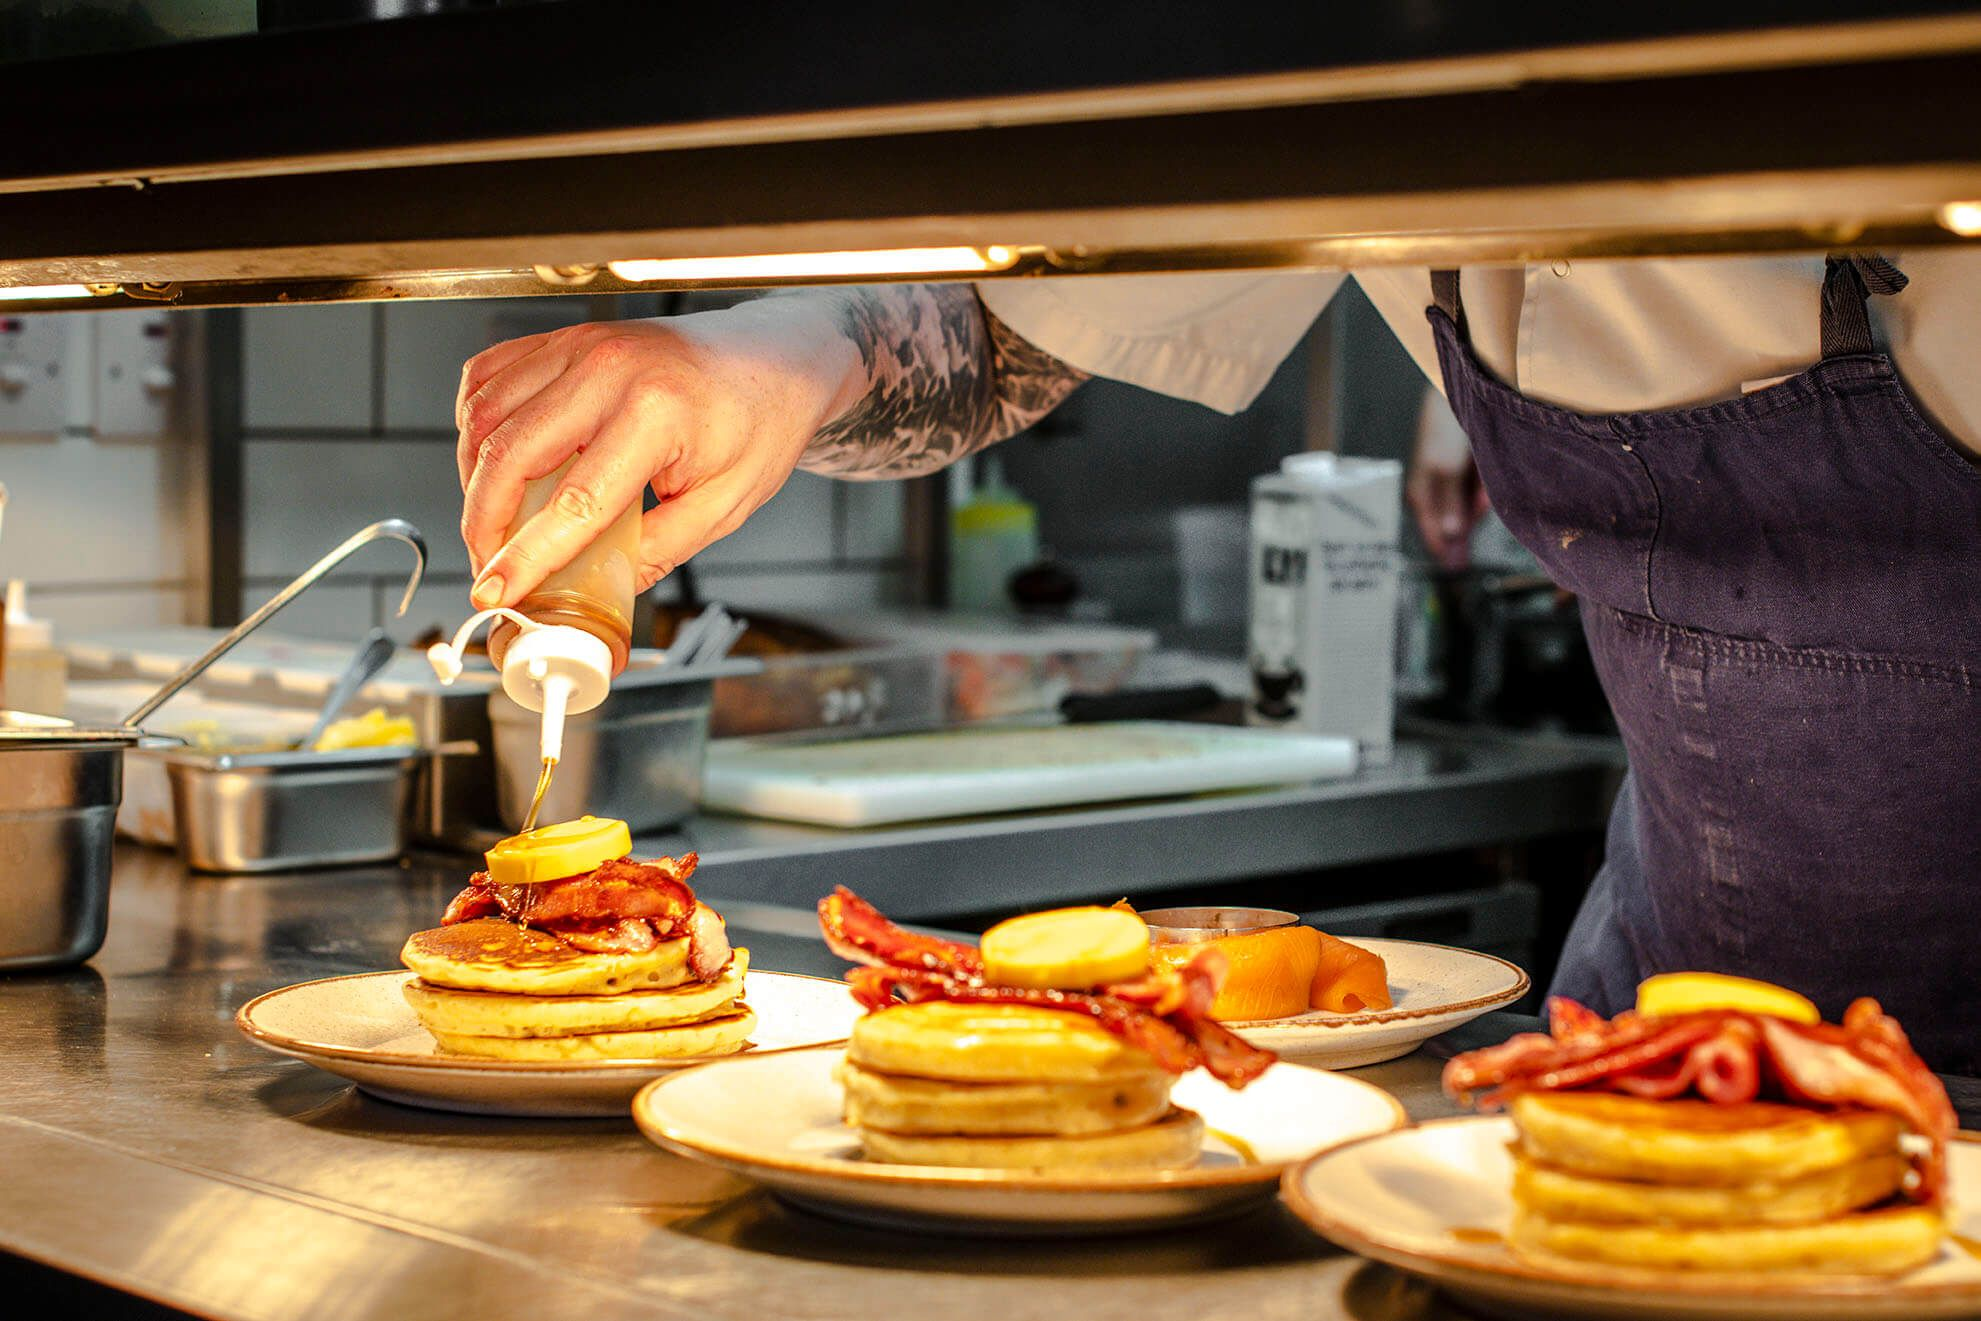 Pancakes and bacon being prepared in by chef in cafe kitchen.